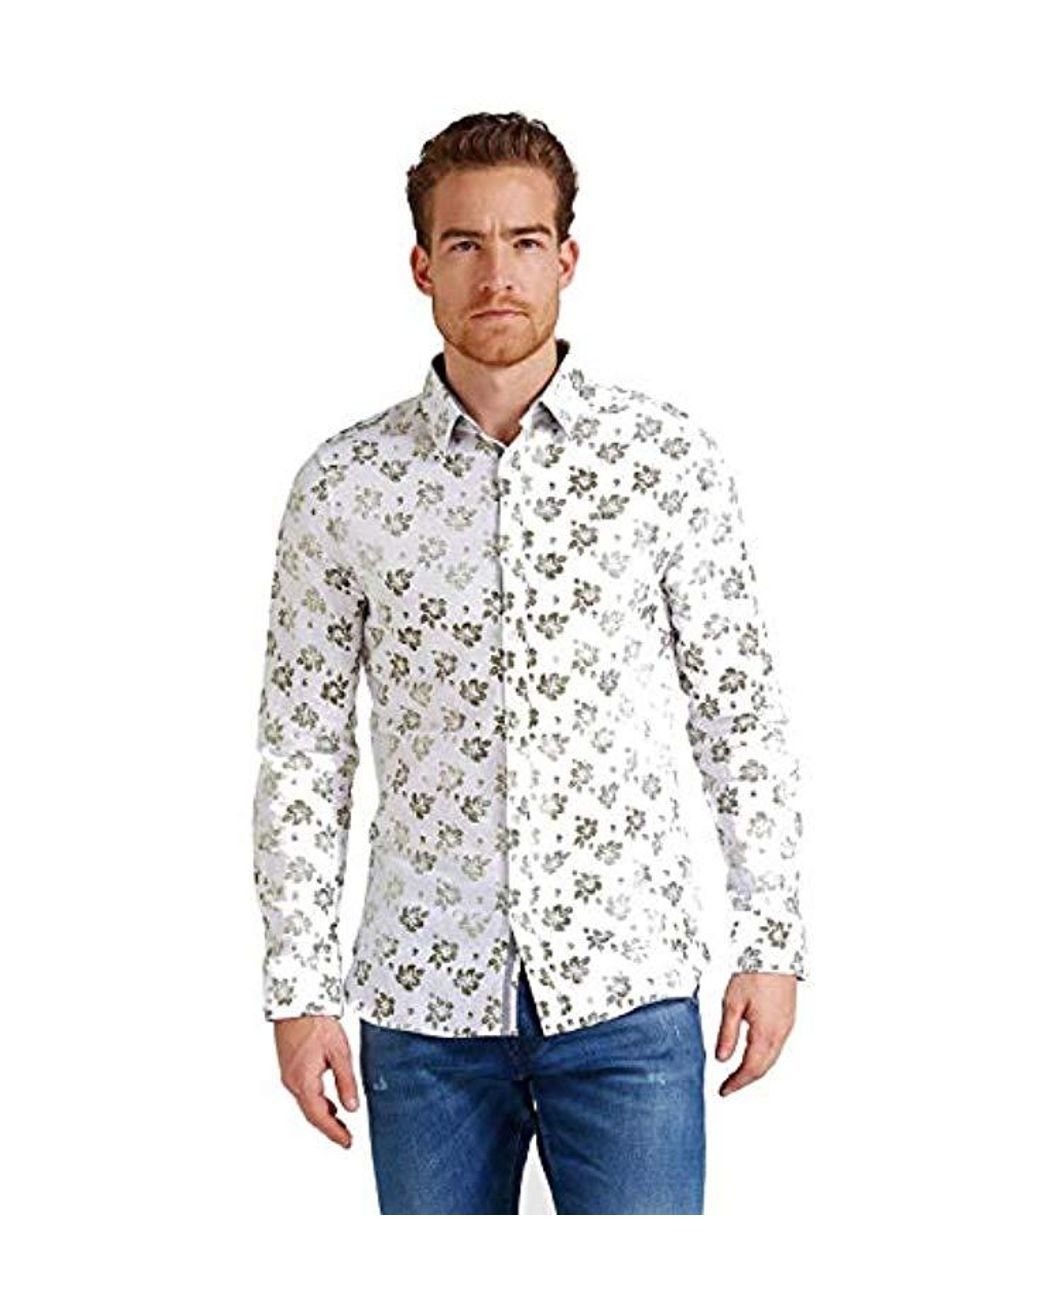 huge selection of 13857 f0bdb Men's White Camicia Uomo Floreale